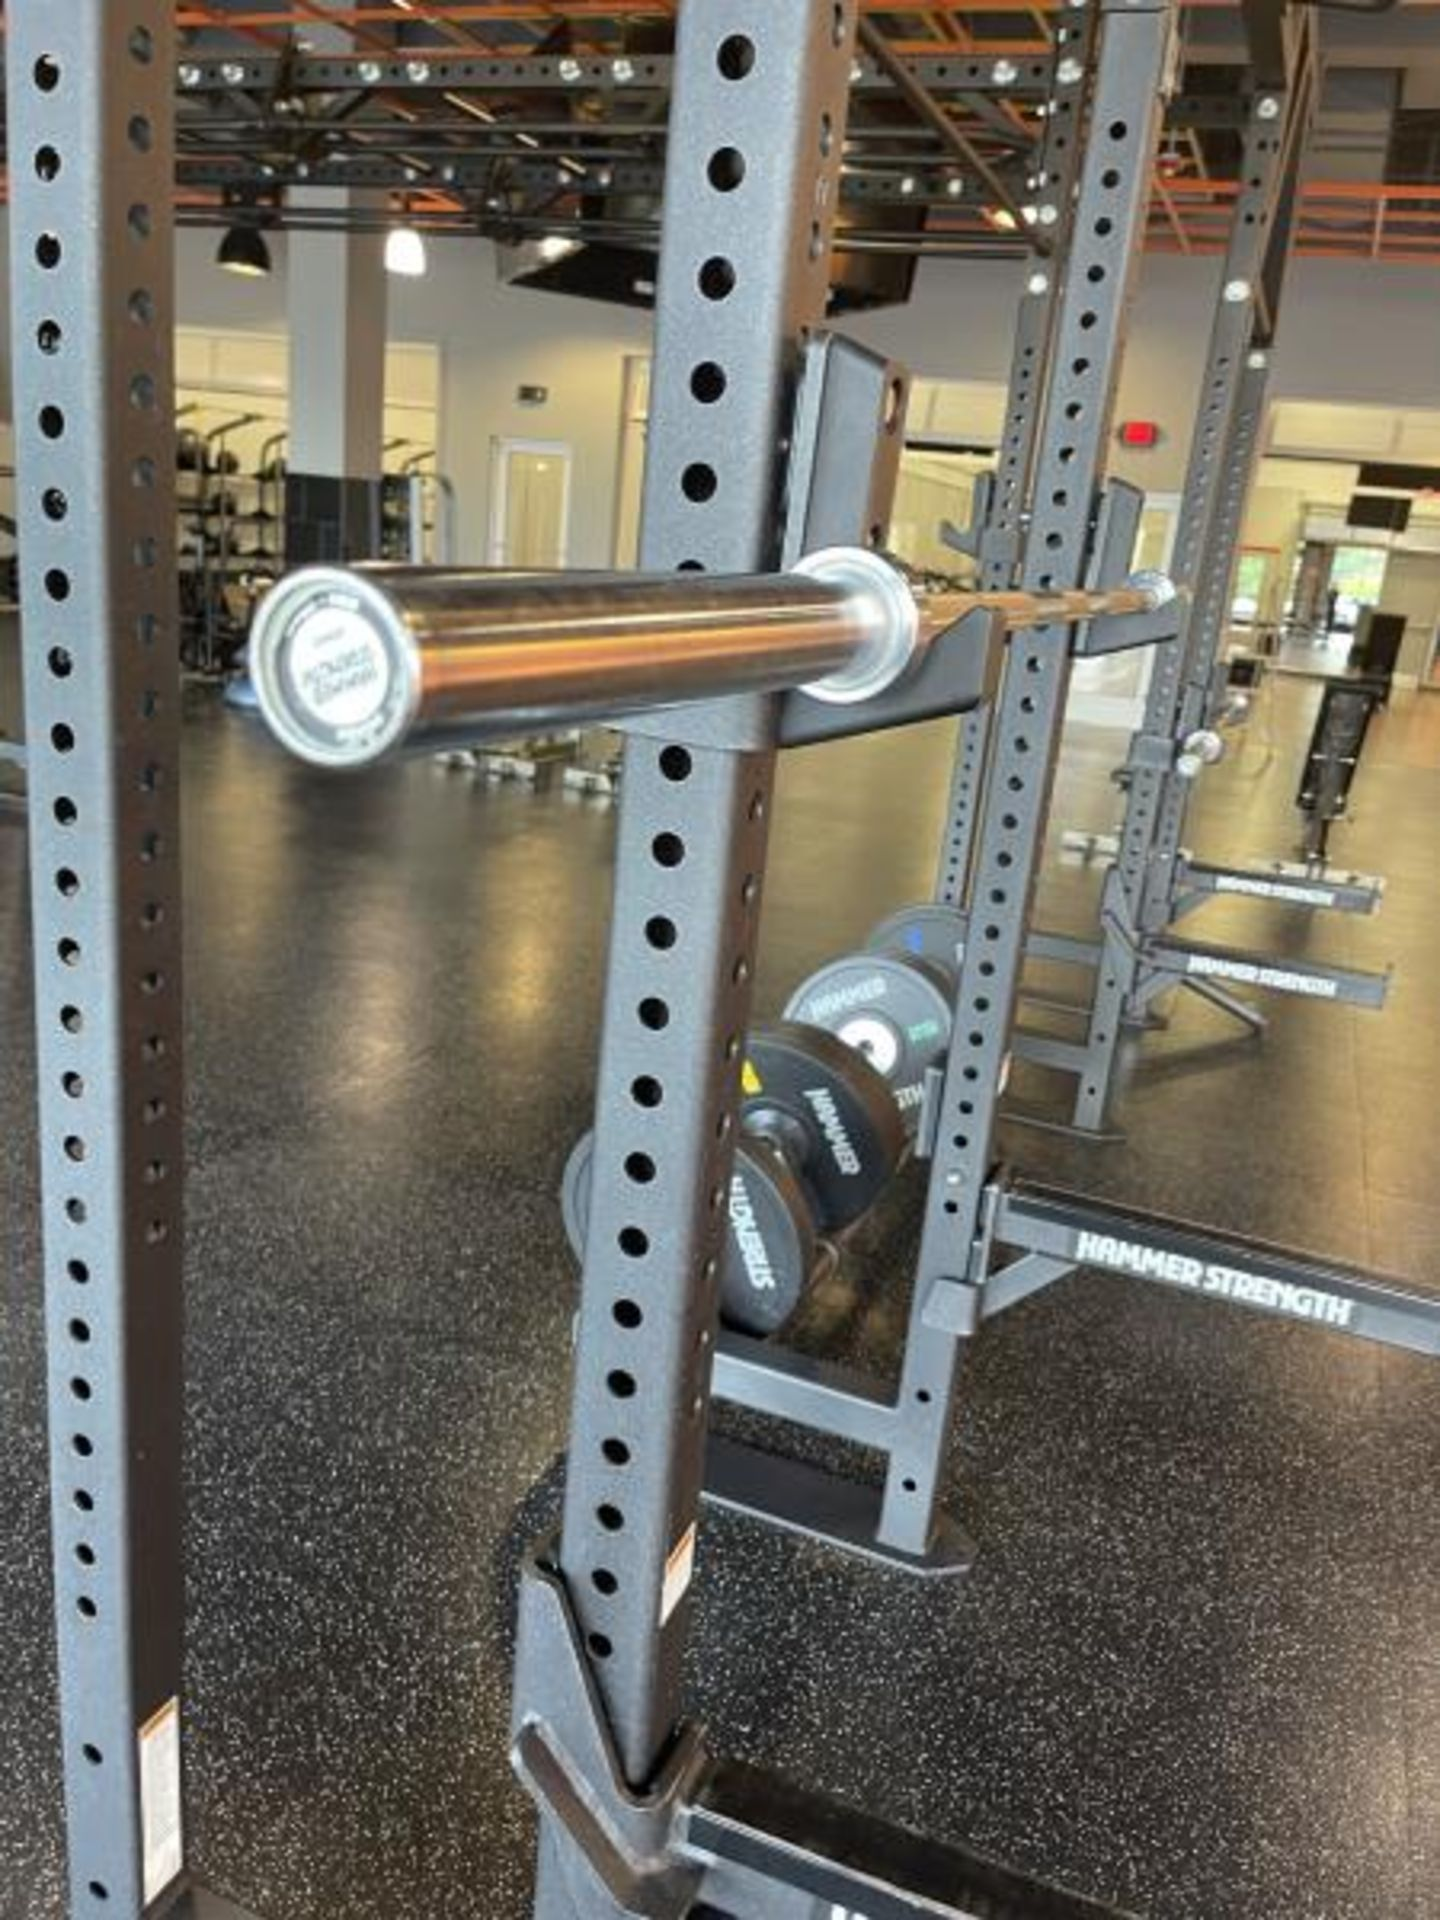 Hammer Strength Multi Station Cage with Hammer Strength Weighted Plates, 4 Bars - Image 5 of 11